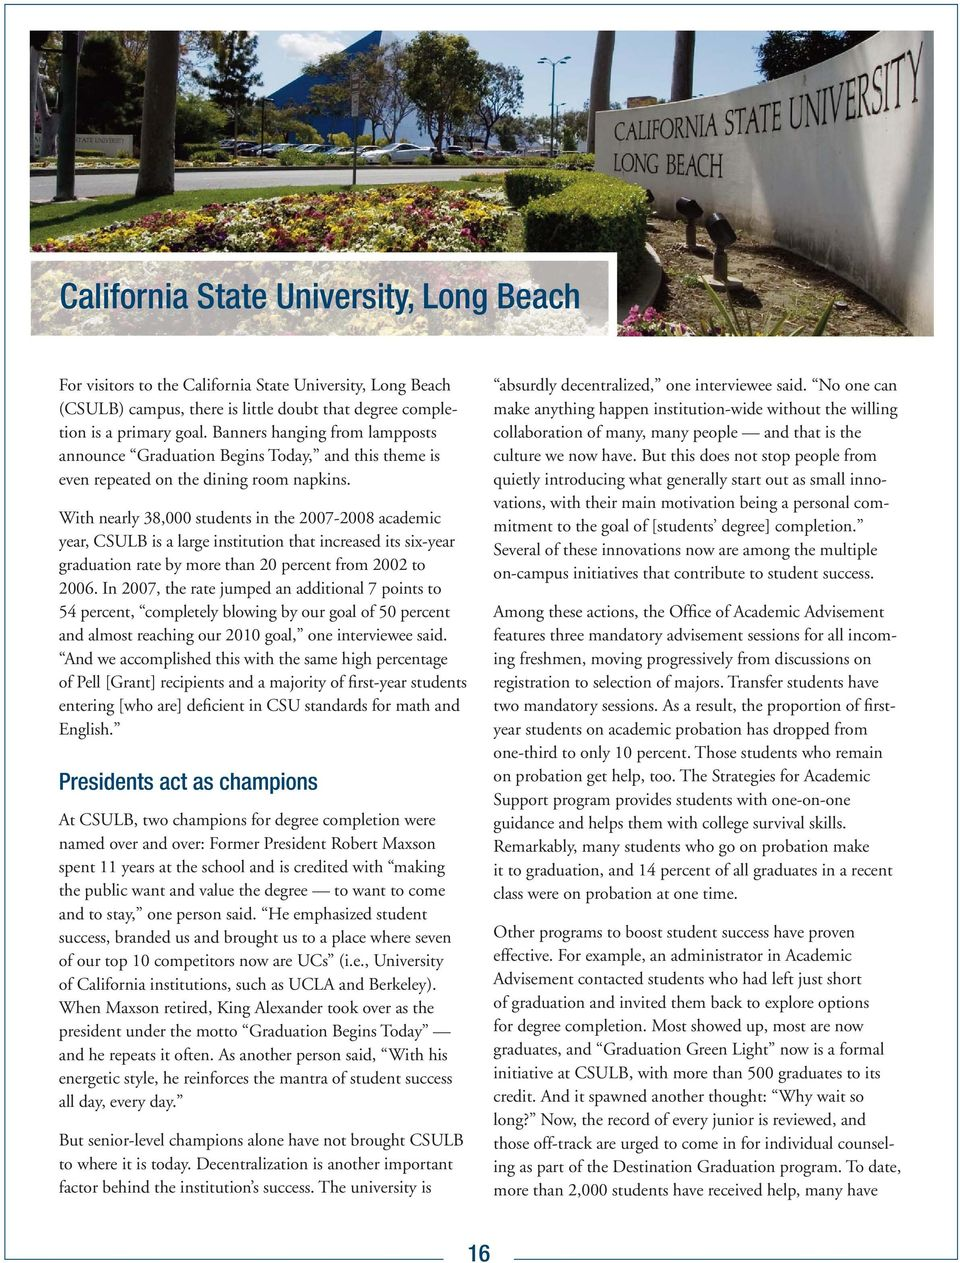 With nearly 38,000 students in the 2007-2008 academic year, CSULB is a large institution that increased its six-year graduation rate by more than 20 percent from 2002 to 2006.